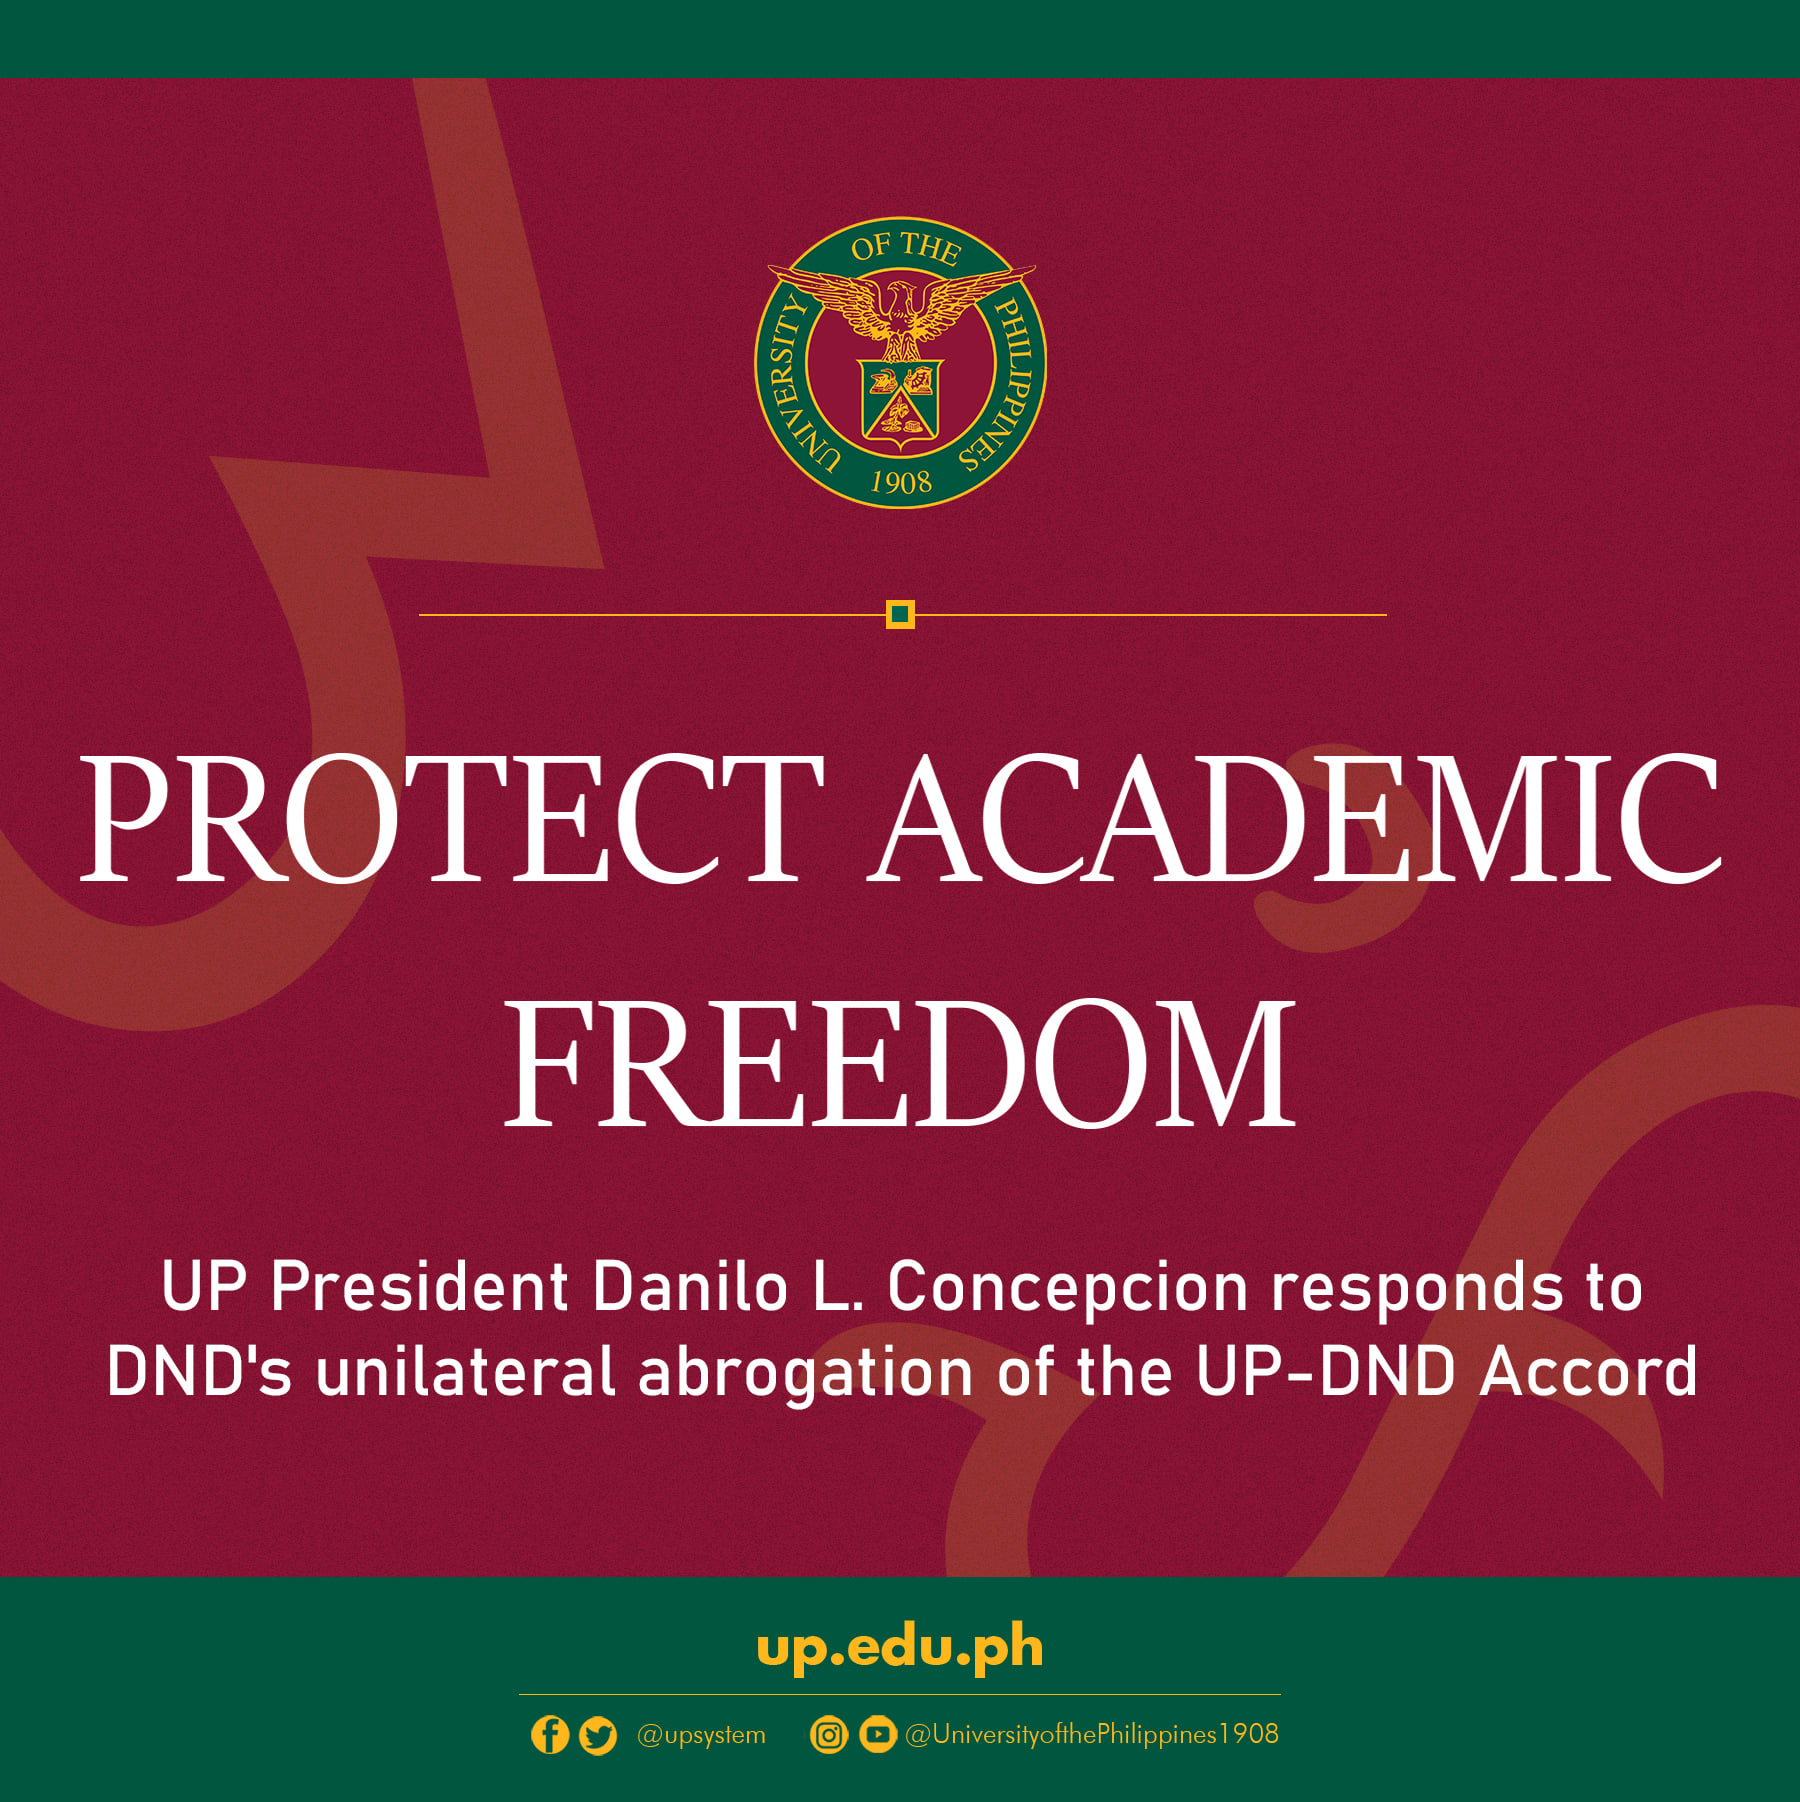 """""""Protect academic freedom""""–UP President Danilo L. Concepcion responds to DND's unilateral abrogation of the UP-DND Accord"""